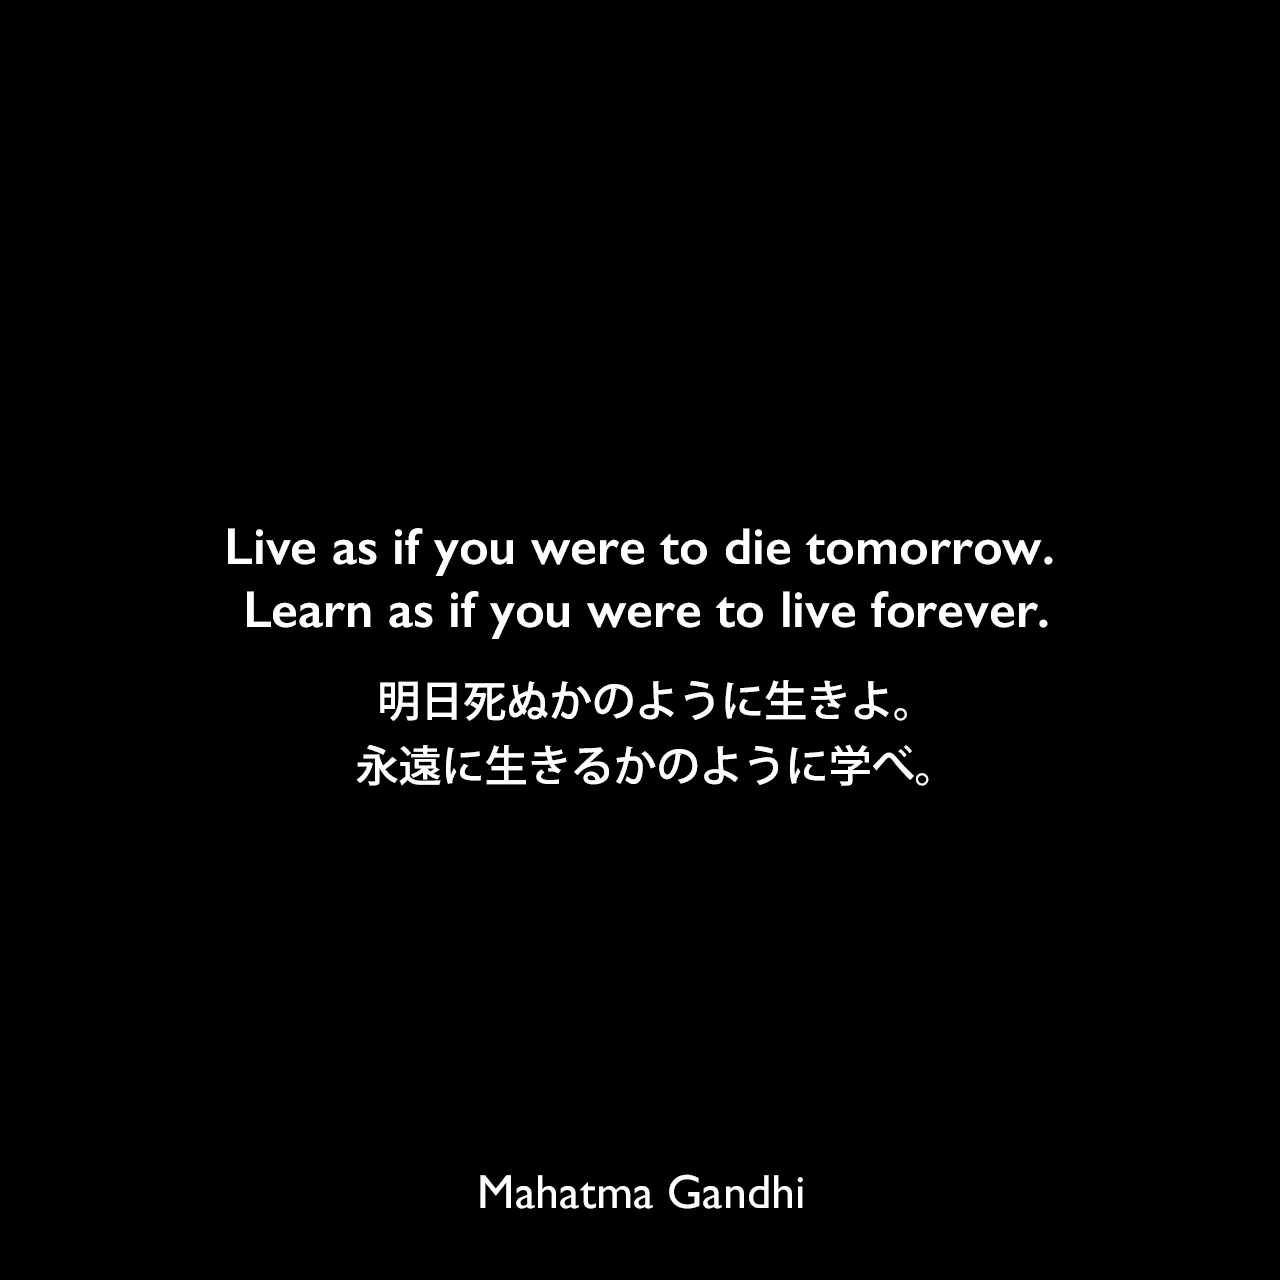 Live as if you were to die tomorrow. Learn as if you were to live forever.明日死ぬかのように生きよ。永遠に生きるかのように学べ。Mahatma Gandhi